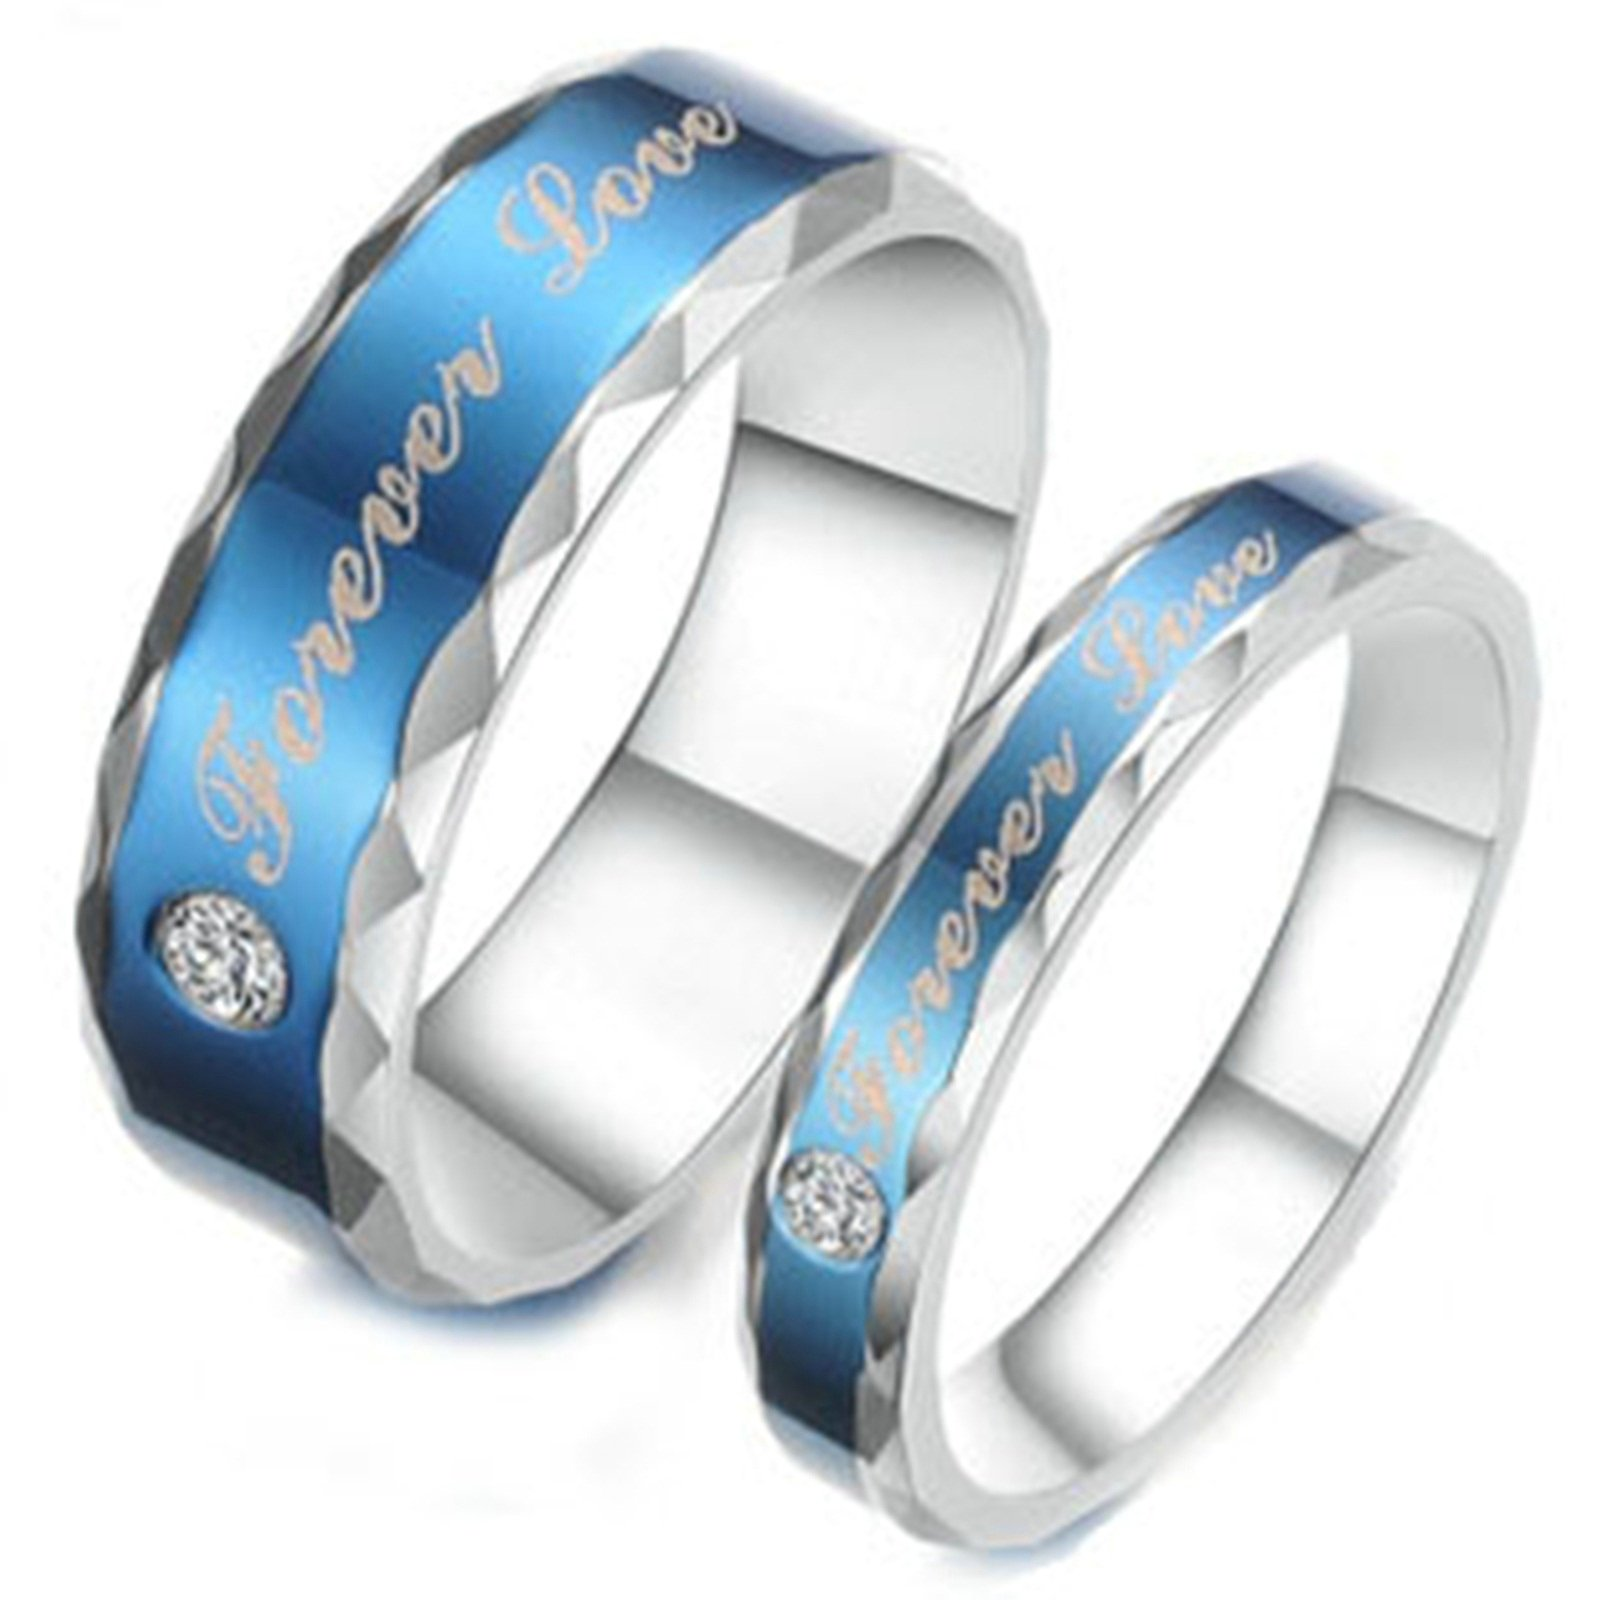 Aooaz 1 Pair Rings Stainless Steel Partner Rings Wedding Bands Blue Silver Forever Love Cubic Zirconia Rings With Free Engraving Womens 5 & Men 7 Novelty Jewelry Gift